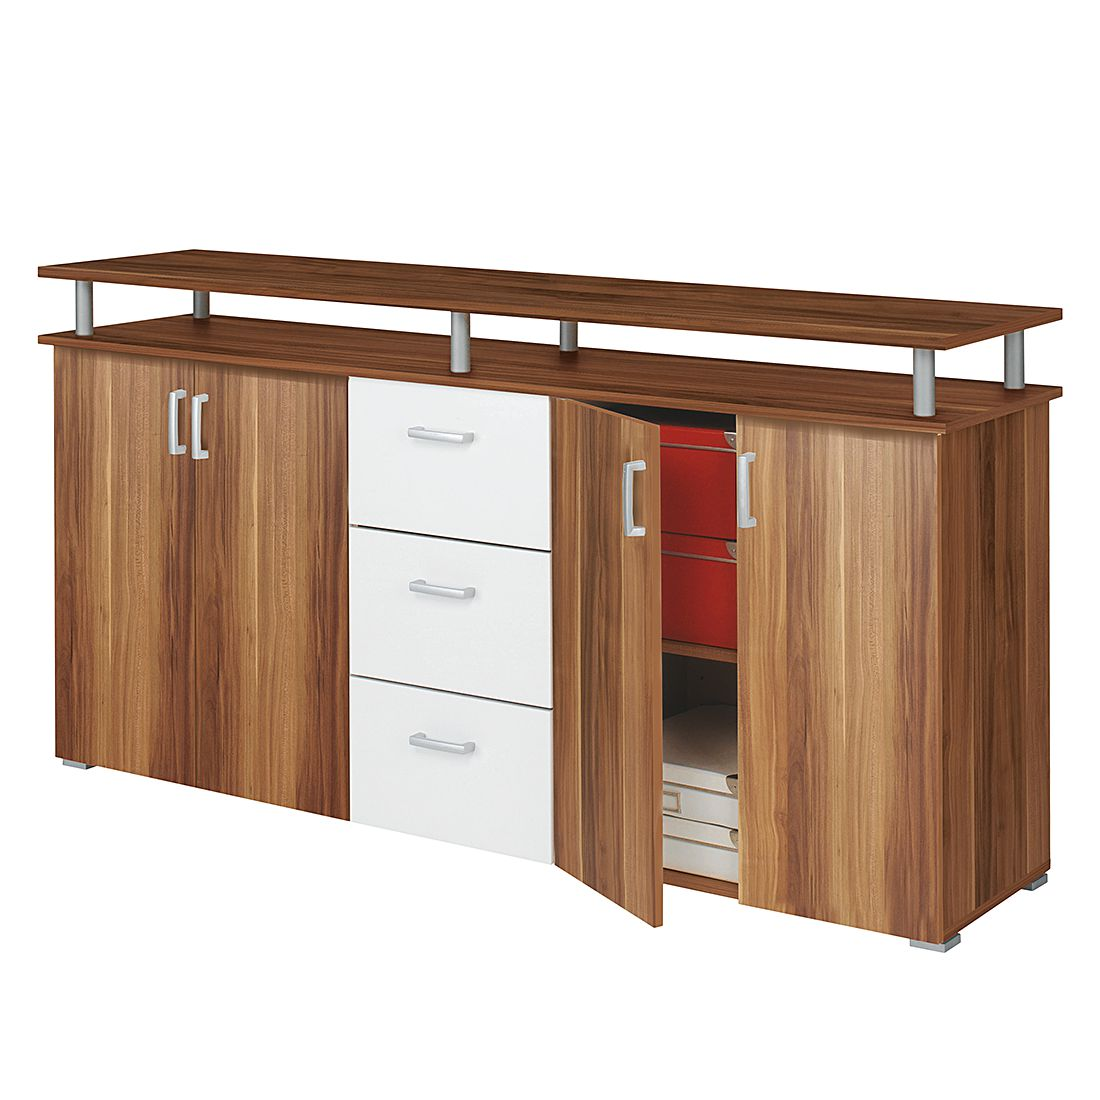 sideboard lara merano dekor wei mooved g nstig. Black Bedroom Furniture Sets. Home Design Ideas